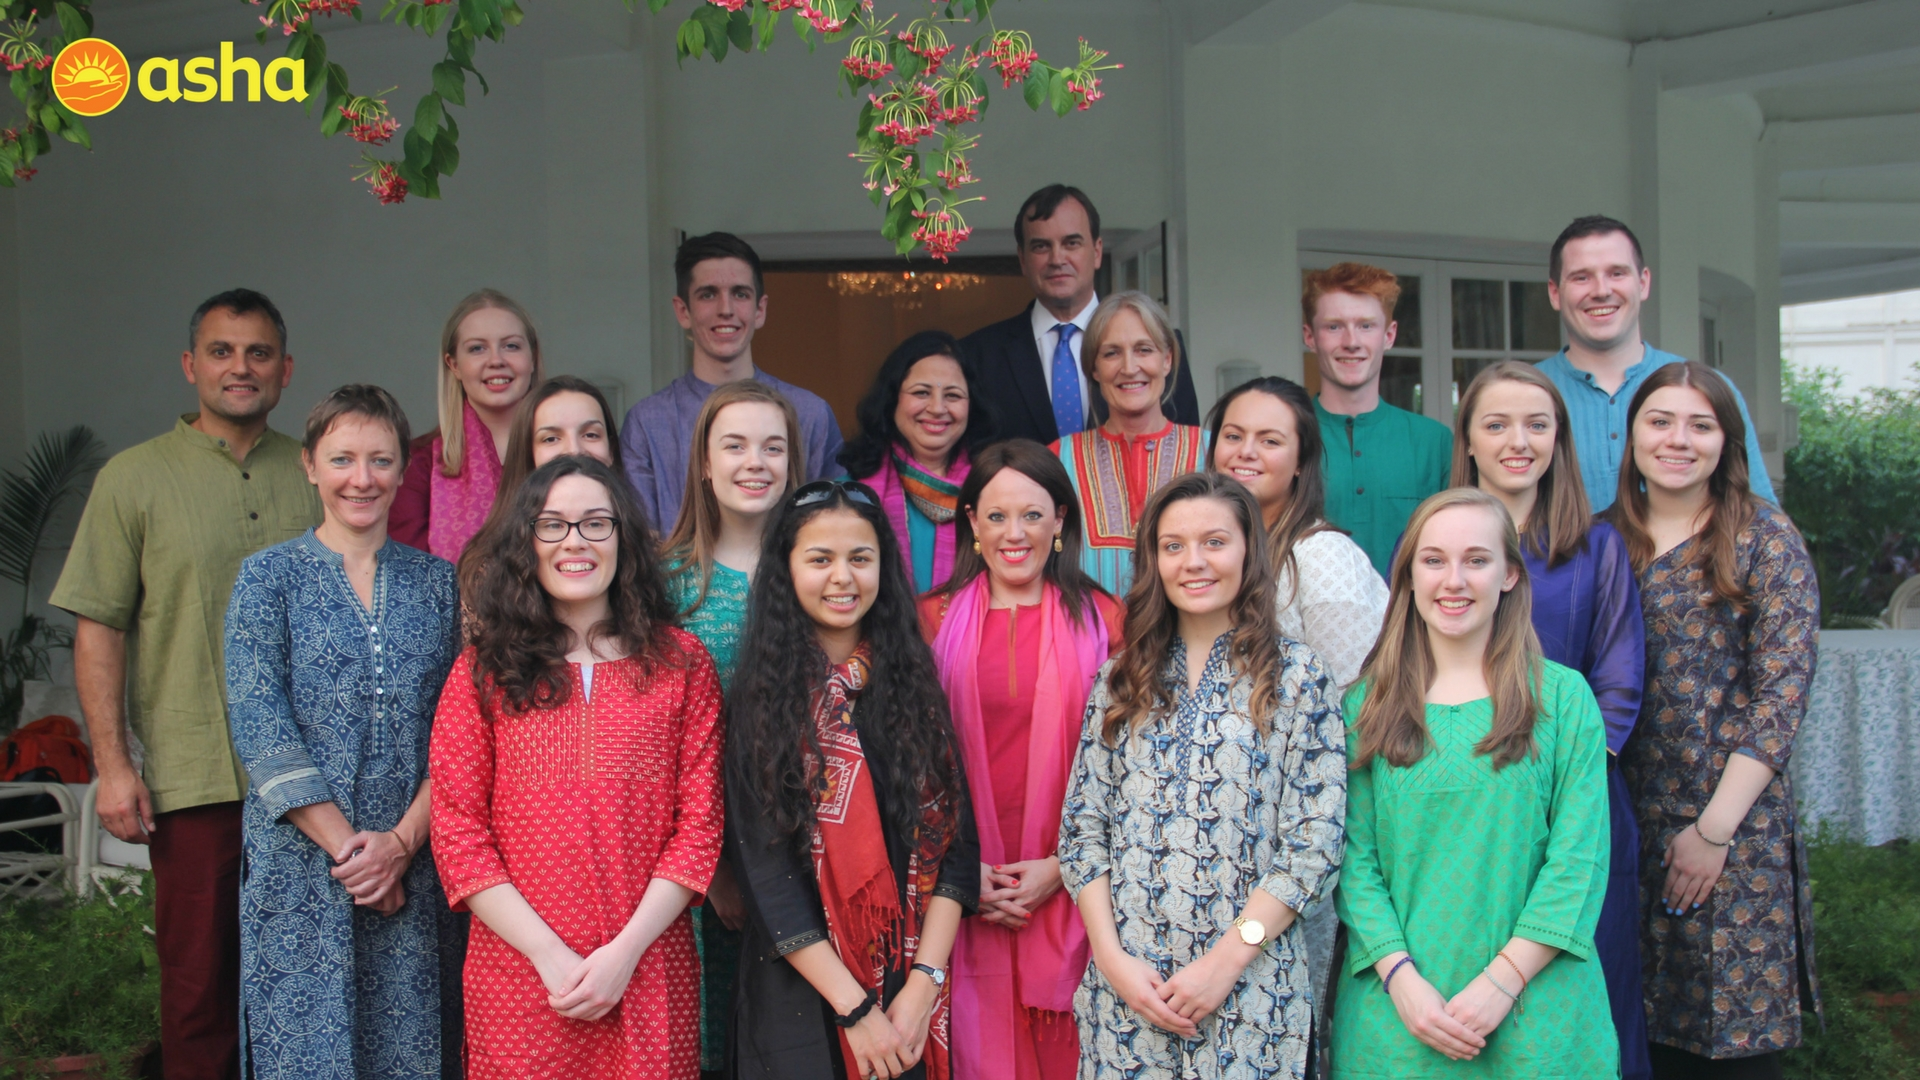 The Honourable Sir Dominic Asquith and Lady Asquith along with Dr. Kiran posing for a group picture with Wallace High School, Northern Ireland.